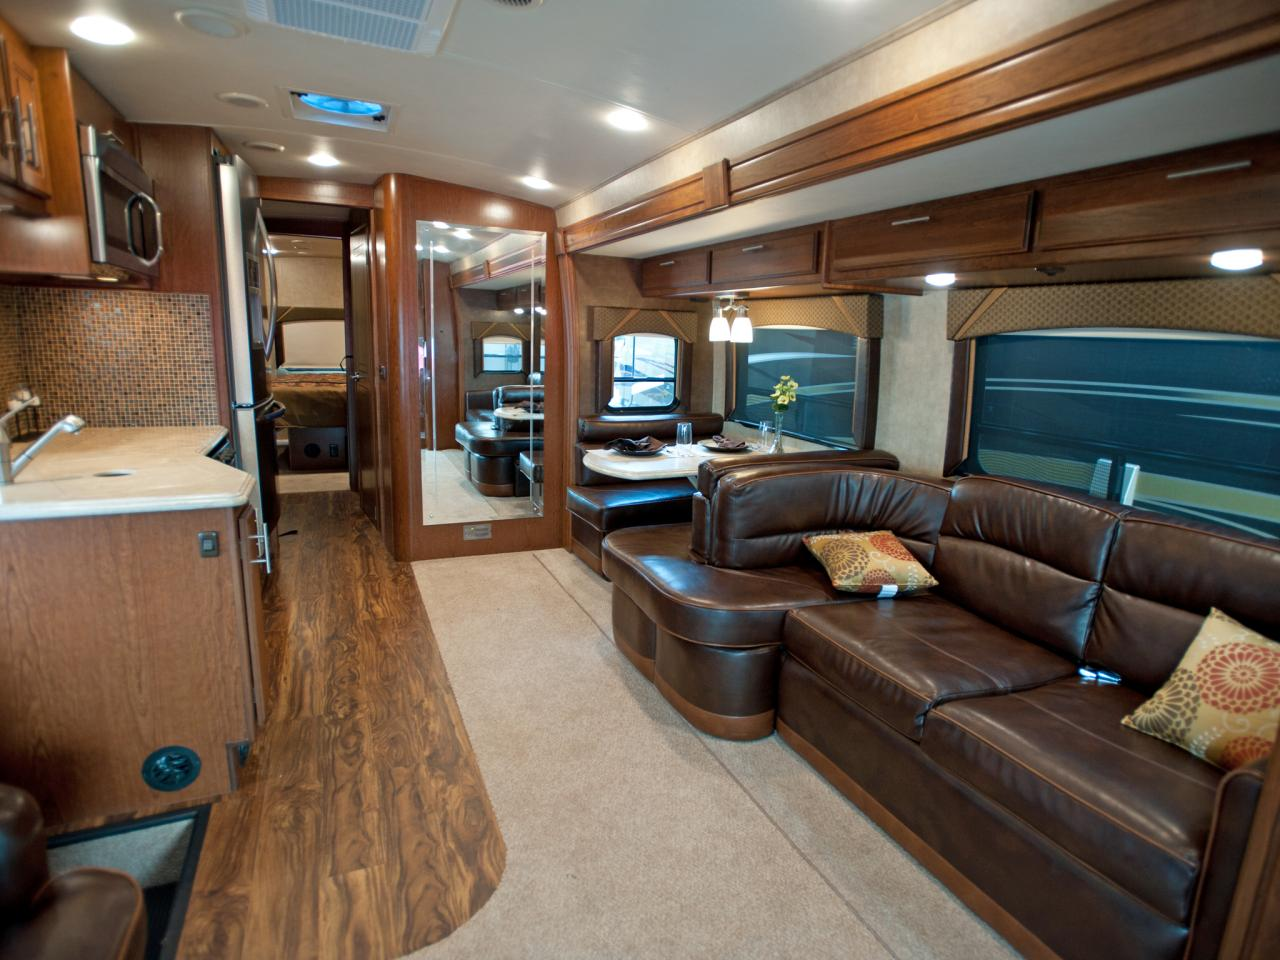 Stunning rv interior design homesfeed for Stunning interior designs